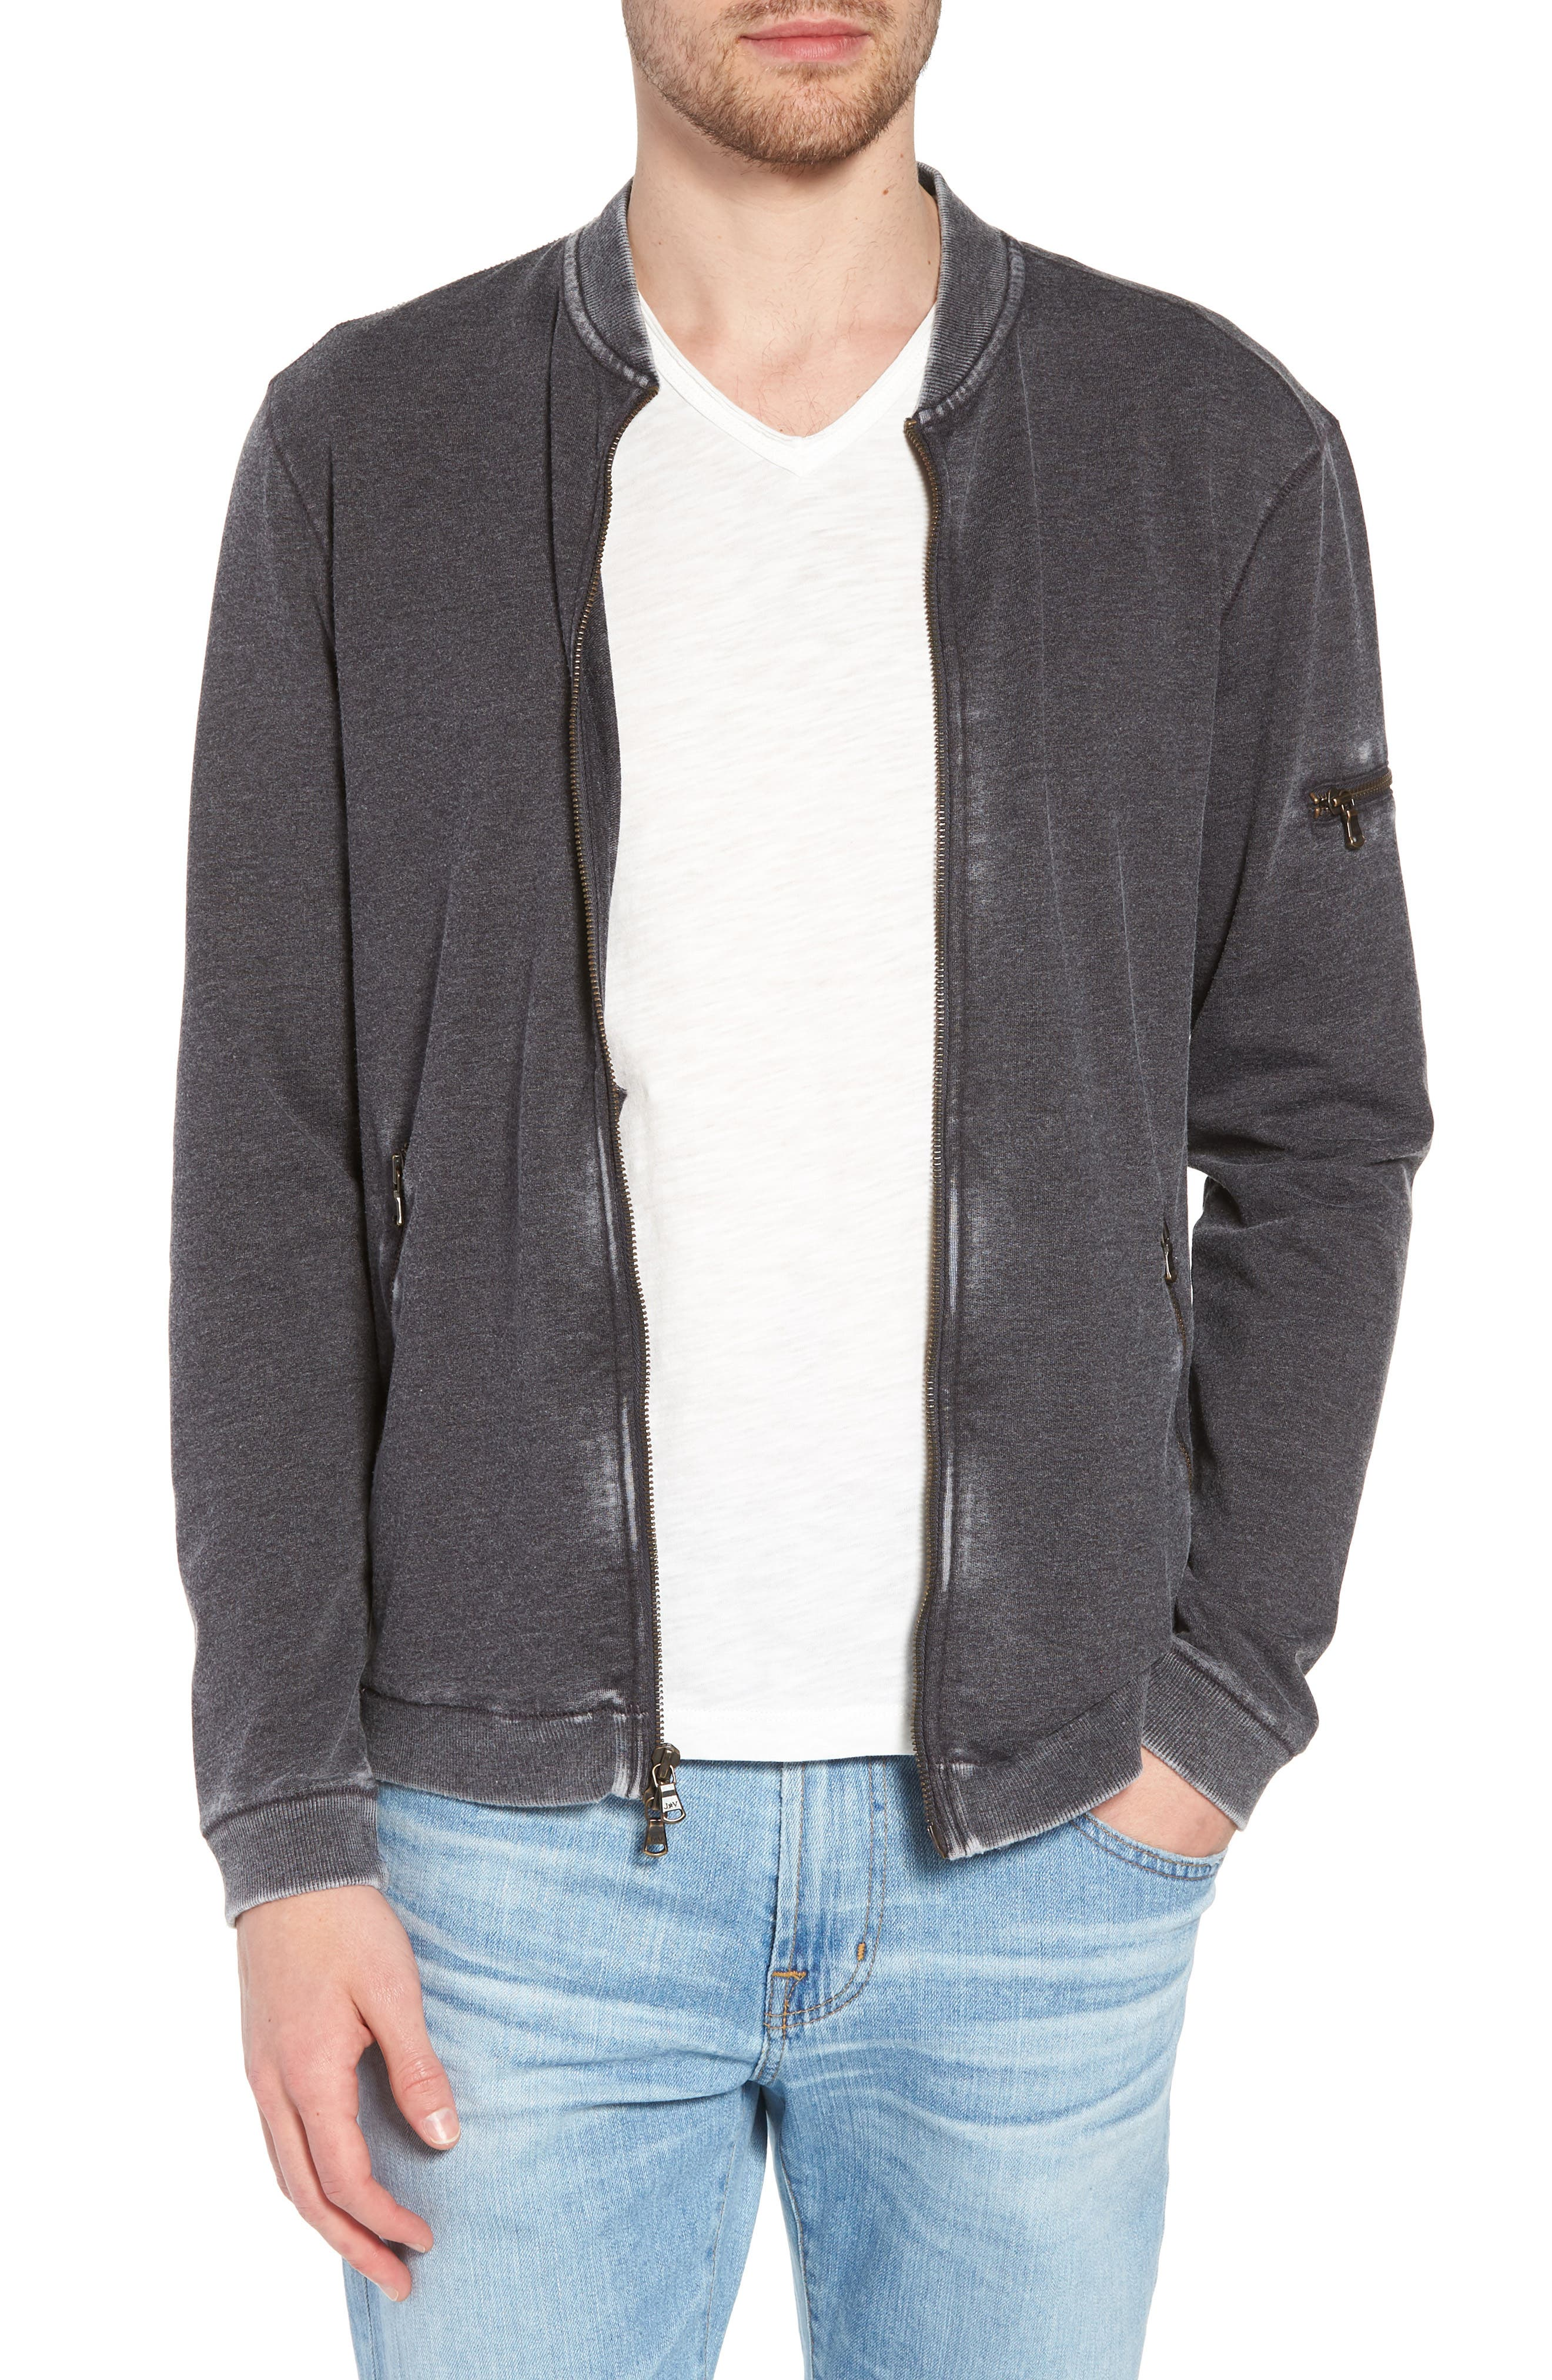 Burnout French Terry Zip Sweater,                             Main thumbnail 1, color,                             Metal Grey